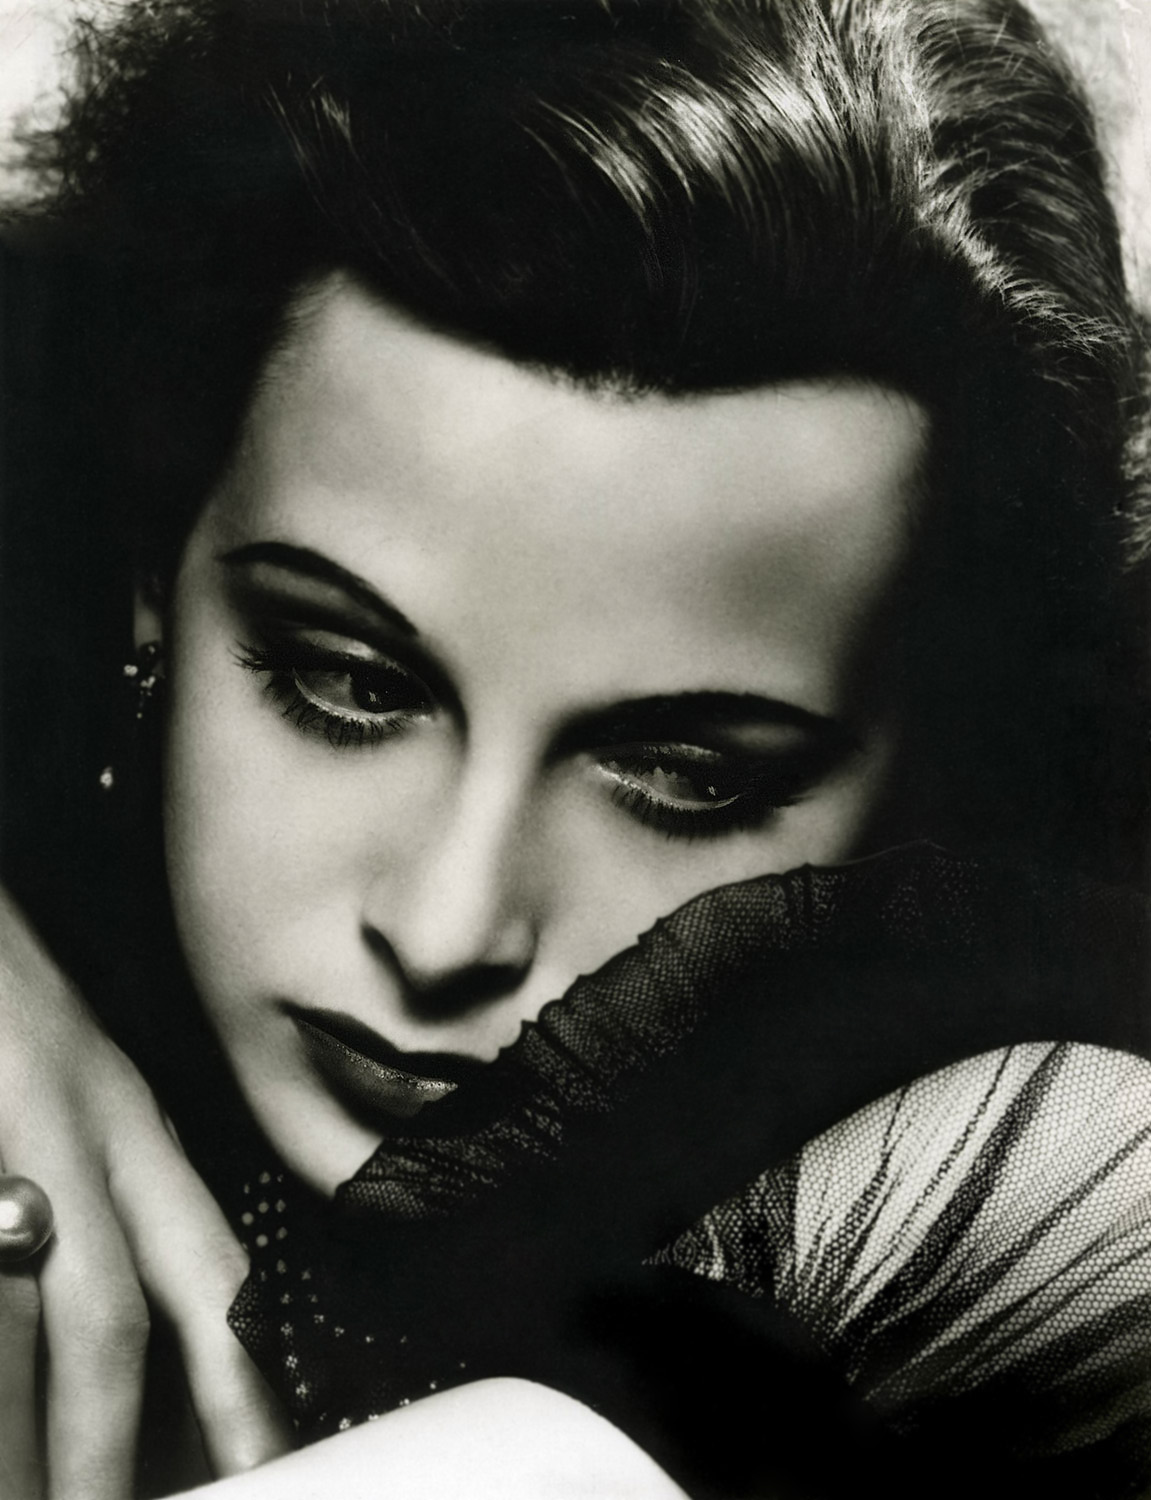 George Hurrell. Hedy Lamarr 1939. Via theredlist